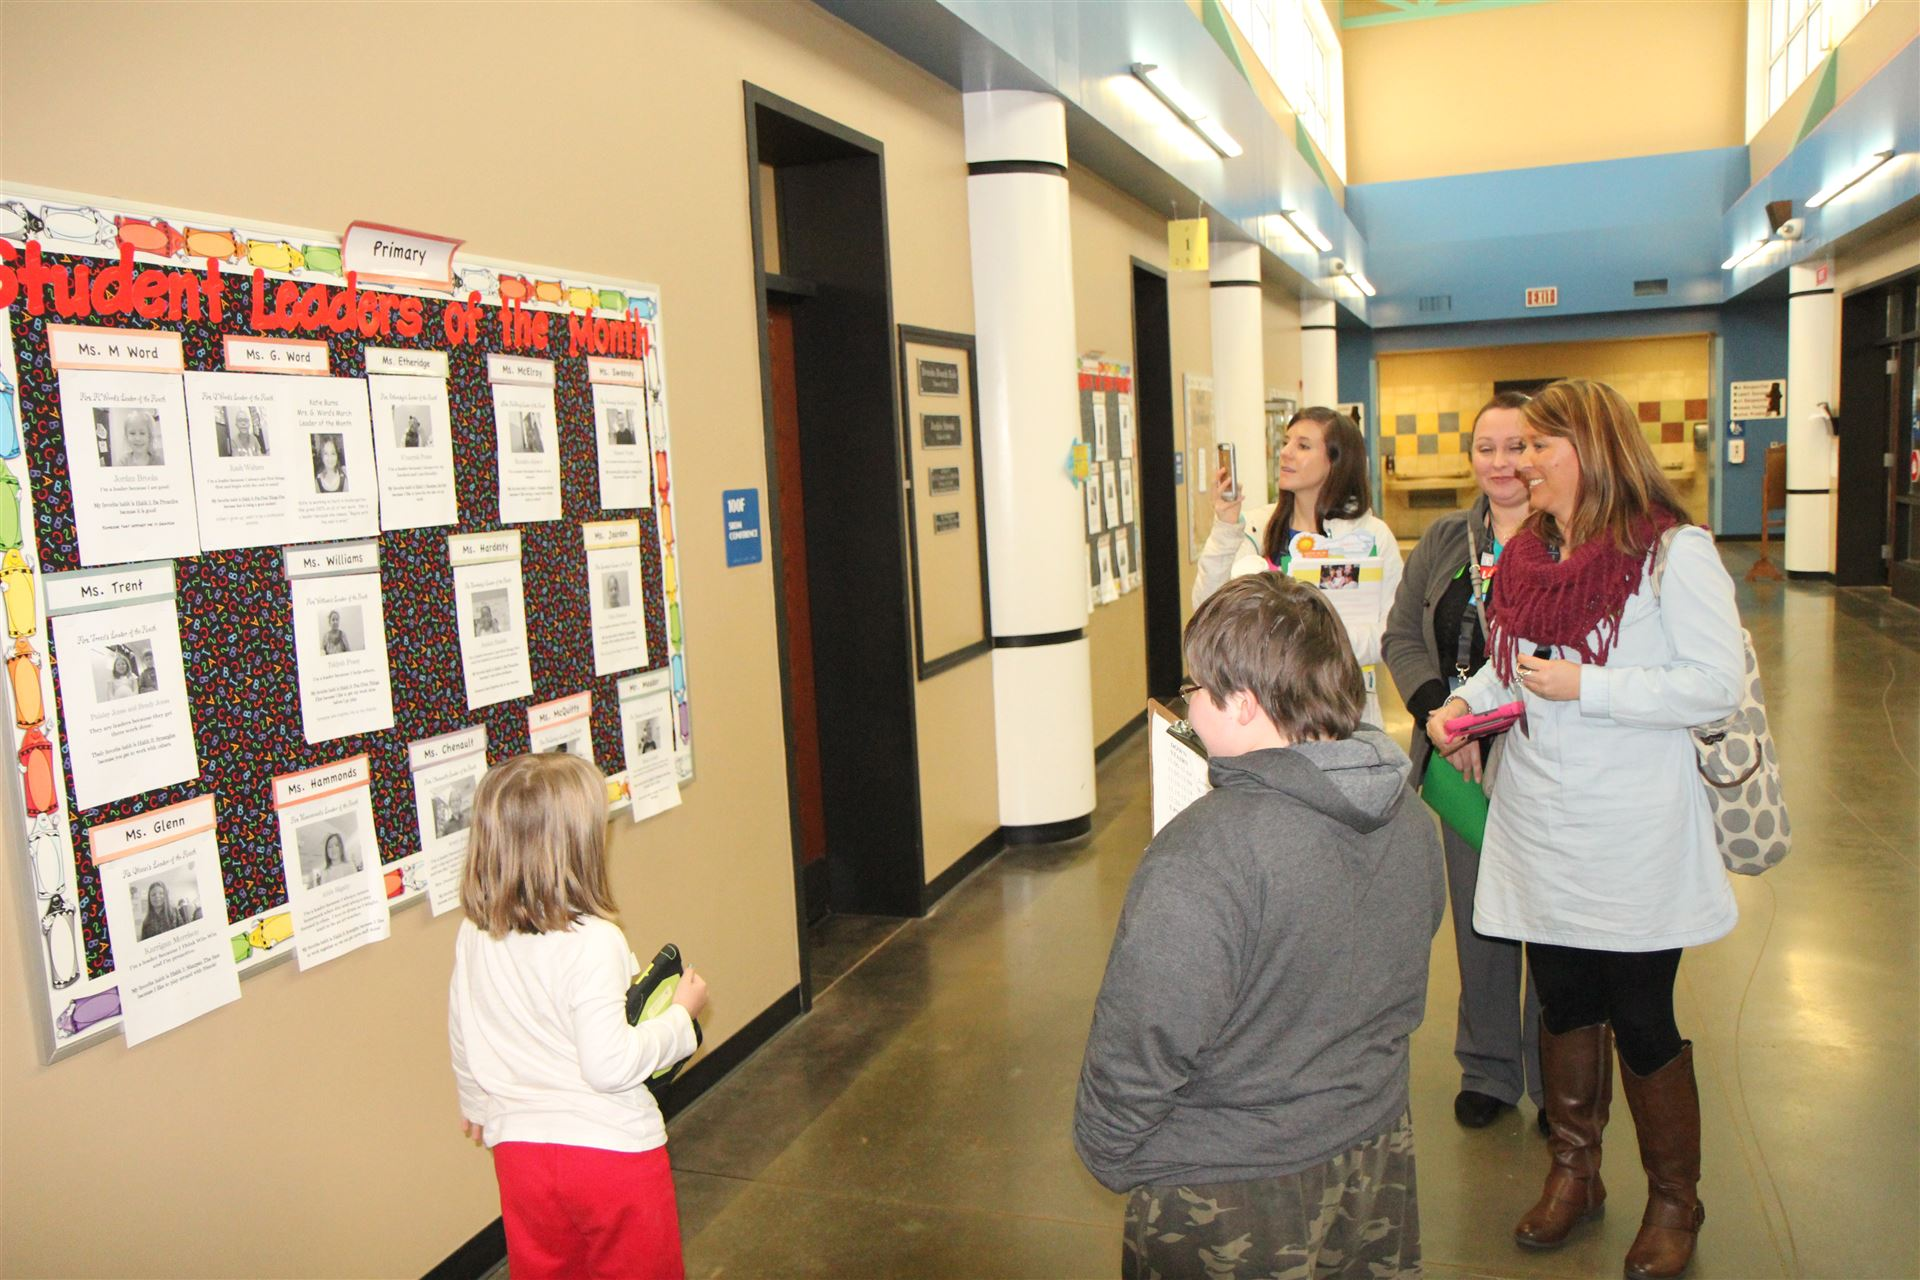 The Leader in Me Symposium visits Bristow Elementary